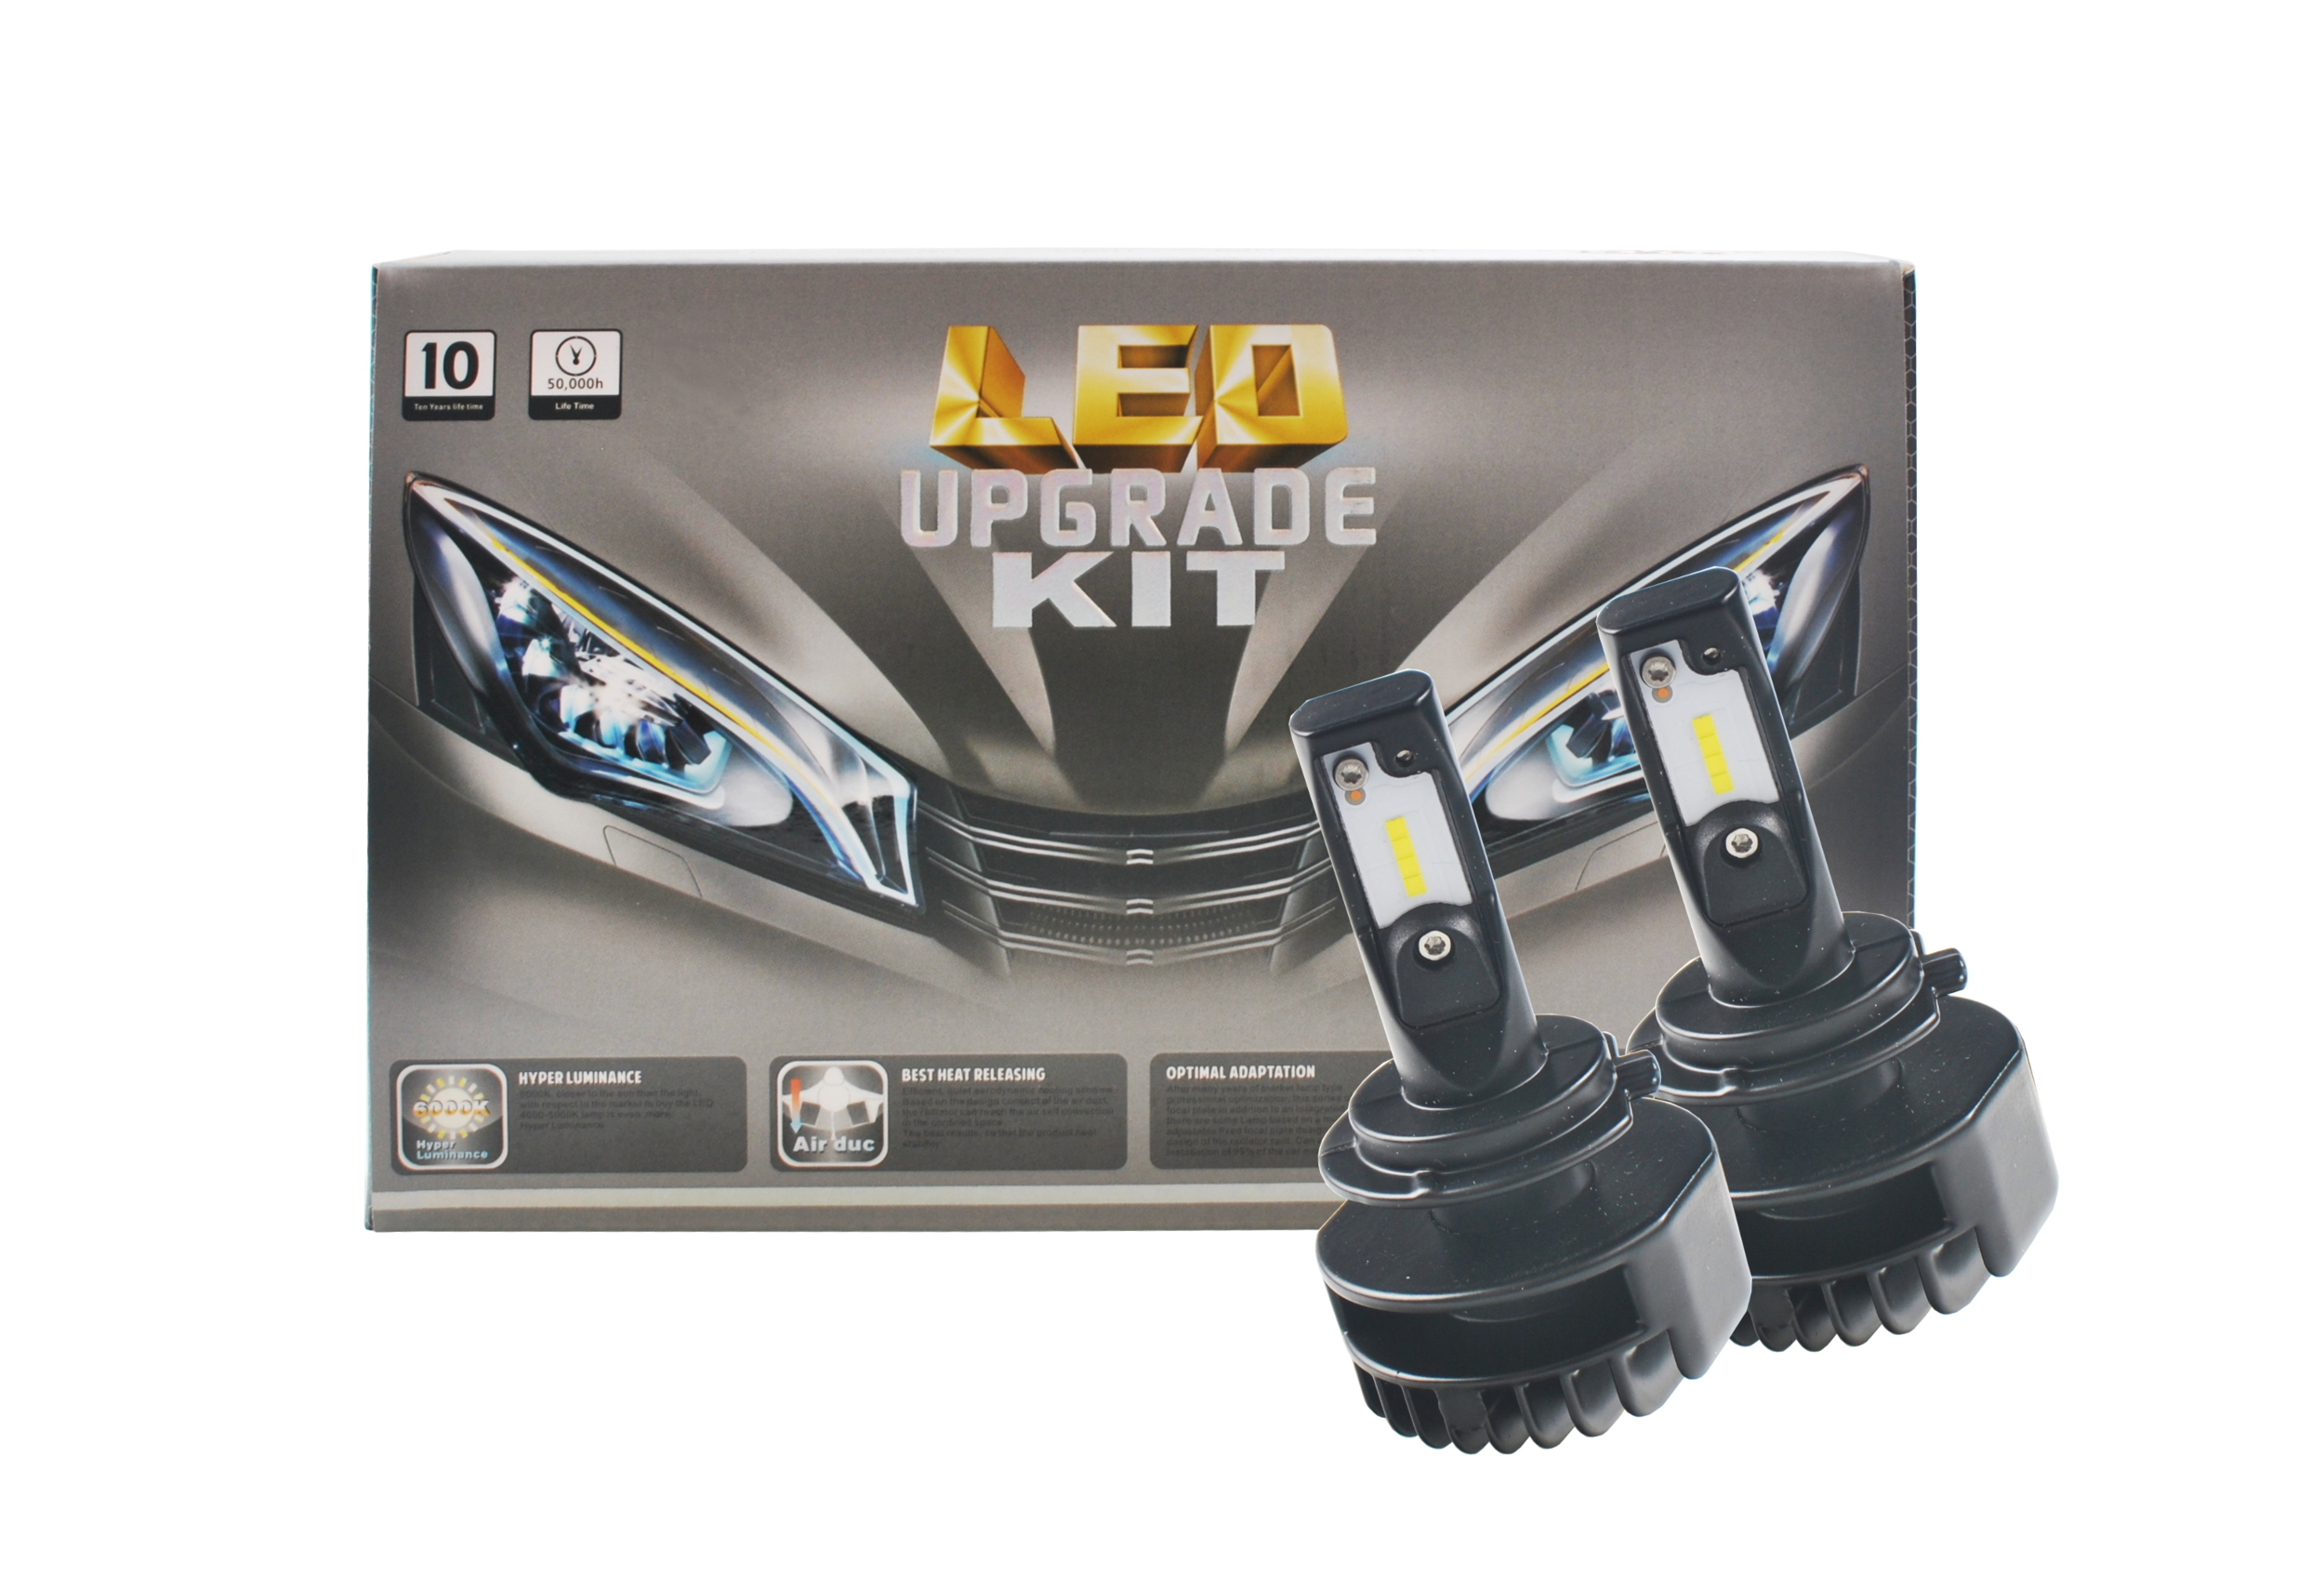 Eclairage Led Moto Kit De Conversion H7 Eclairage Led Pour Auto Ou Moto Kit